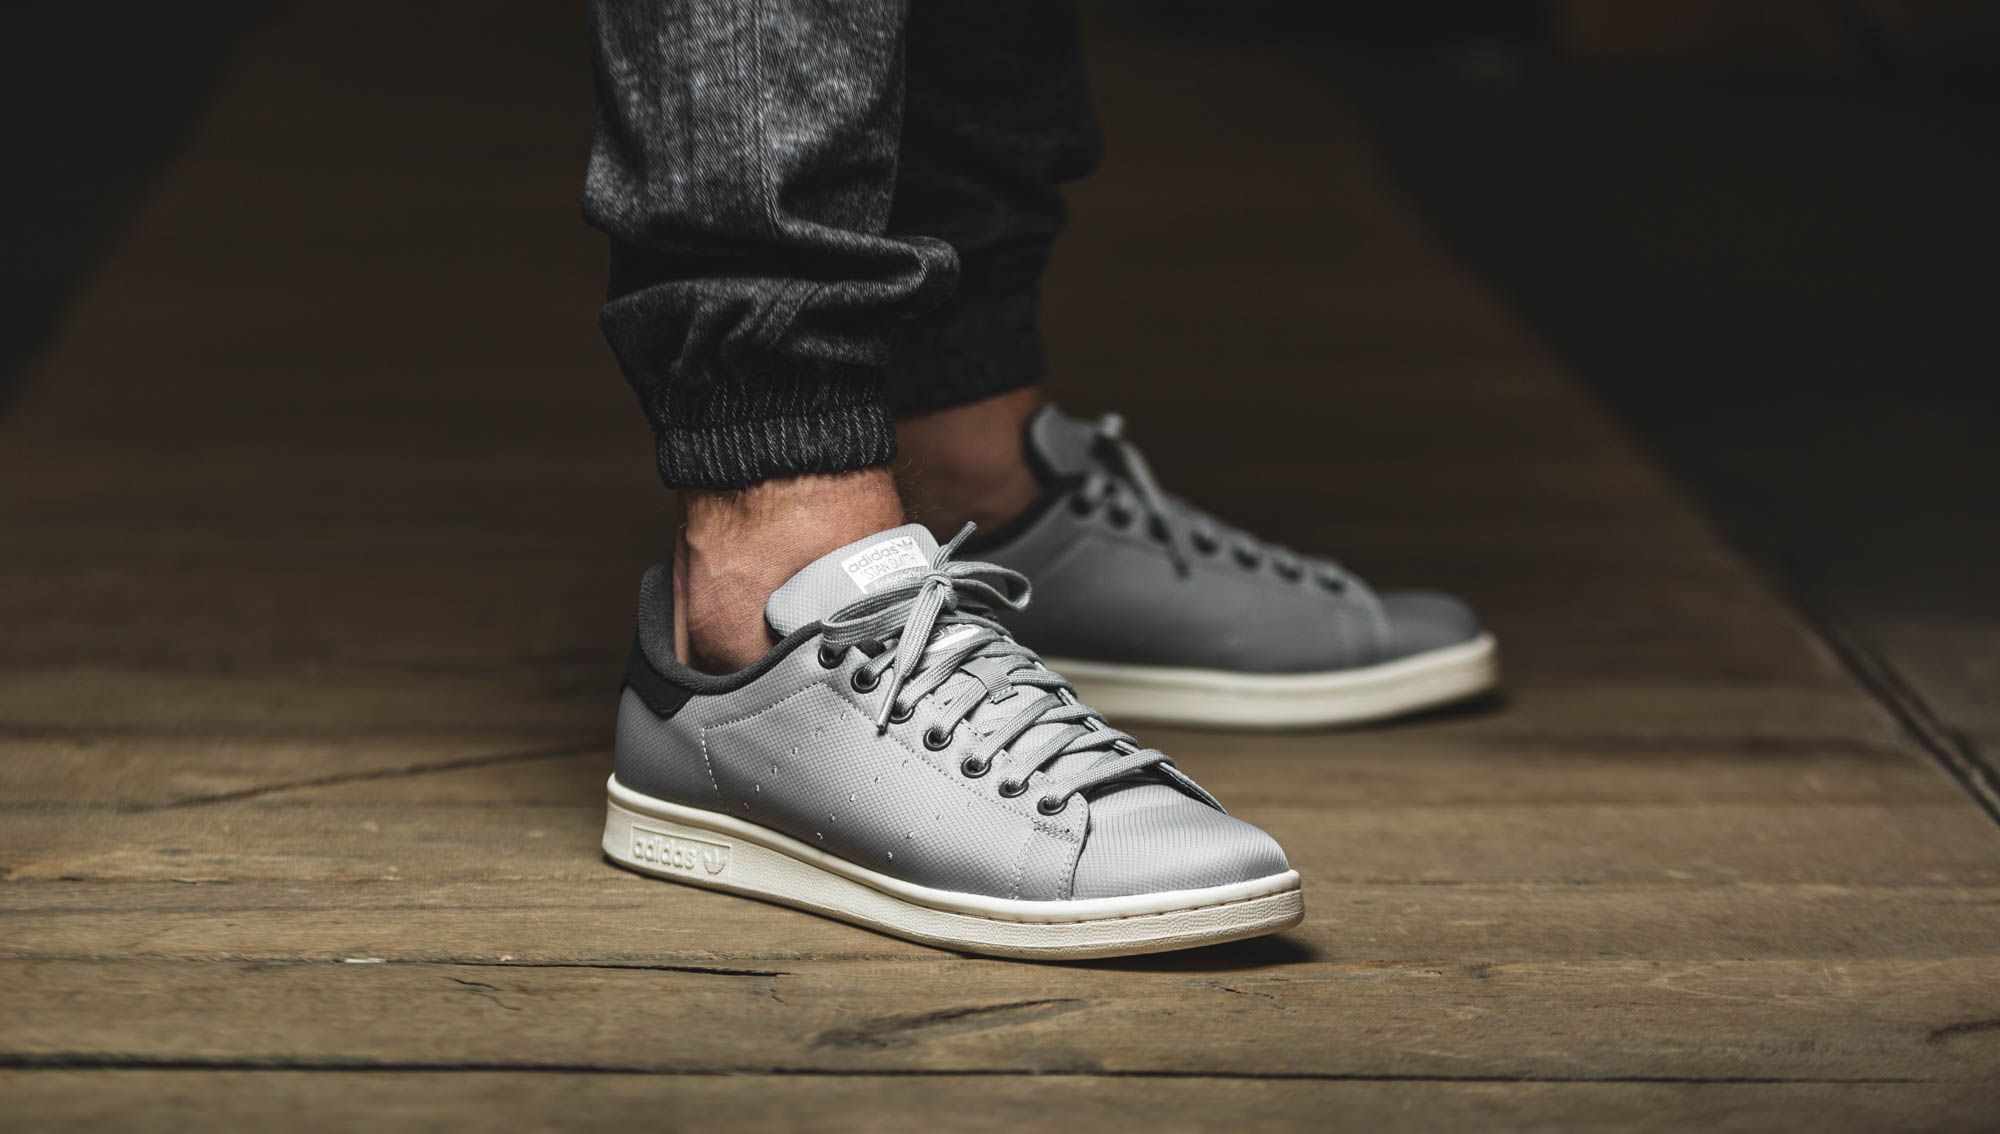 4f2b4cad98a32 The adidas Originals Stan Smith with an Primaloft innovative Primaloft an  upper ca8af8